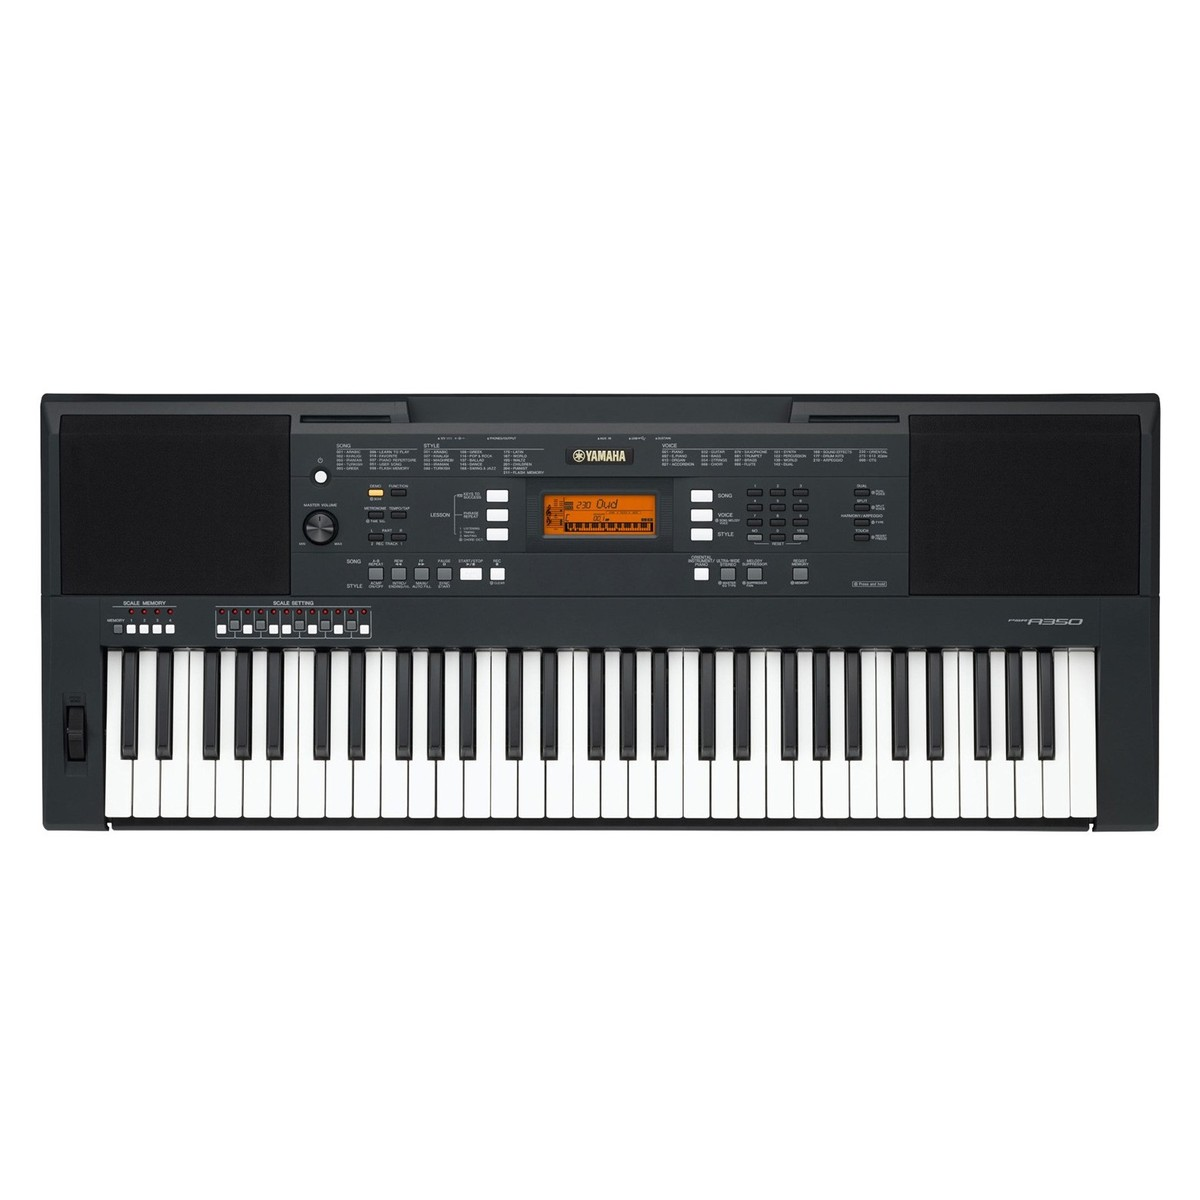 Image Result For Yamaha Keyboard Replacement Parts